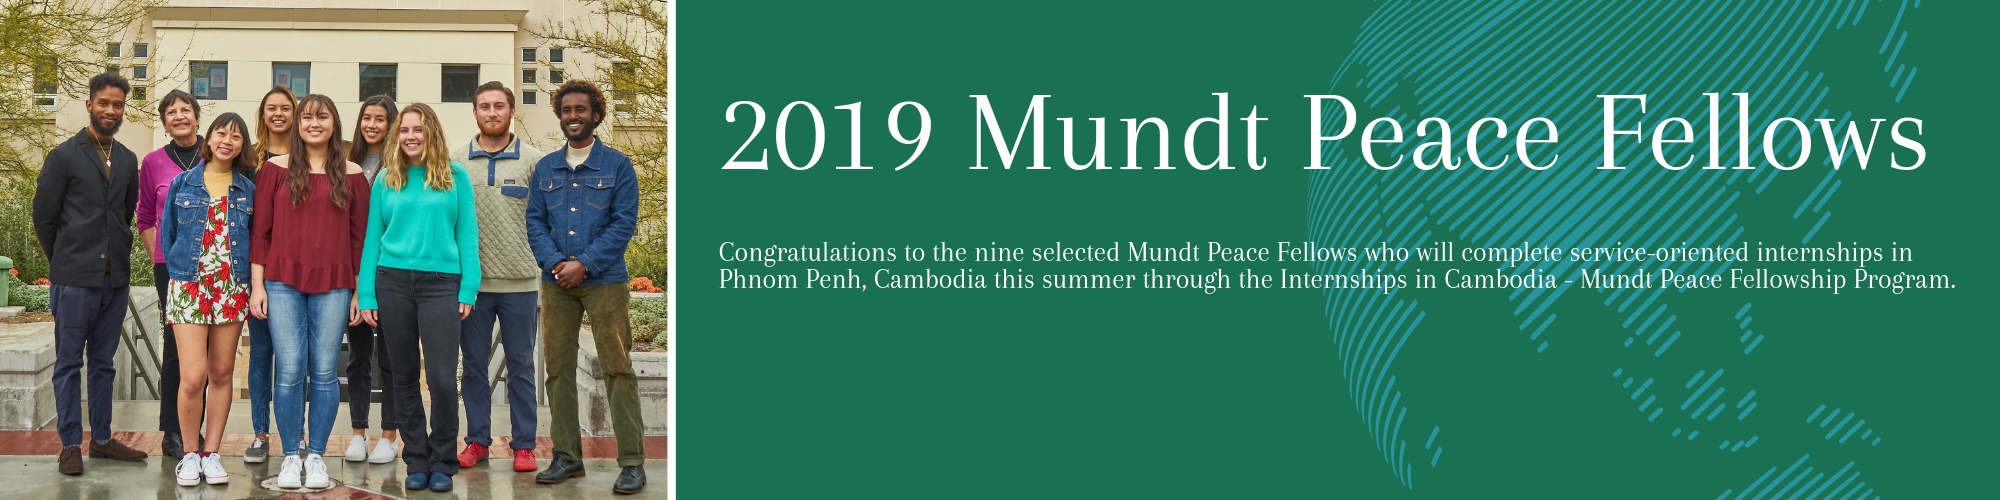 2019 Mundt Peace Fellows.  Congratulations to the nine winners.